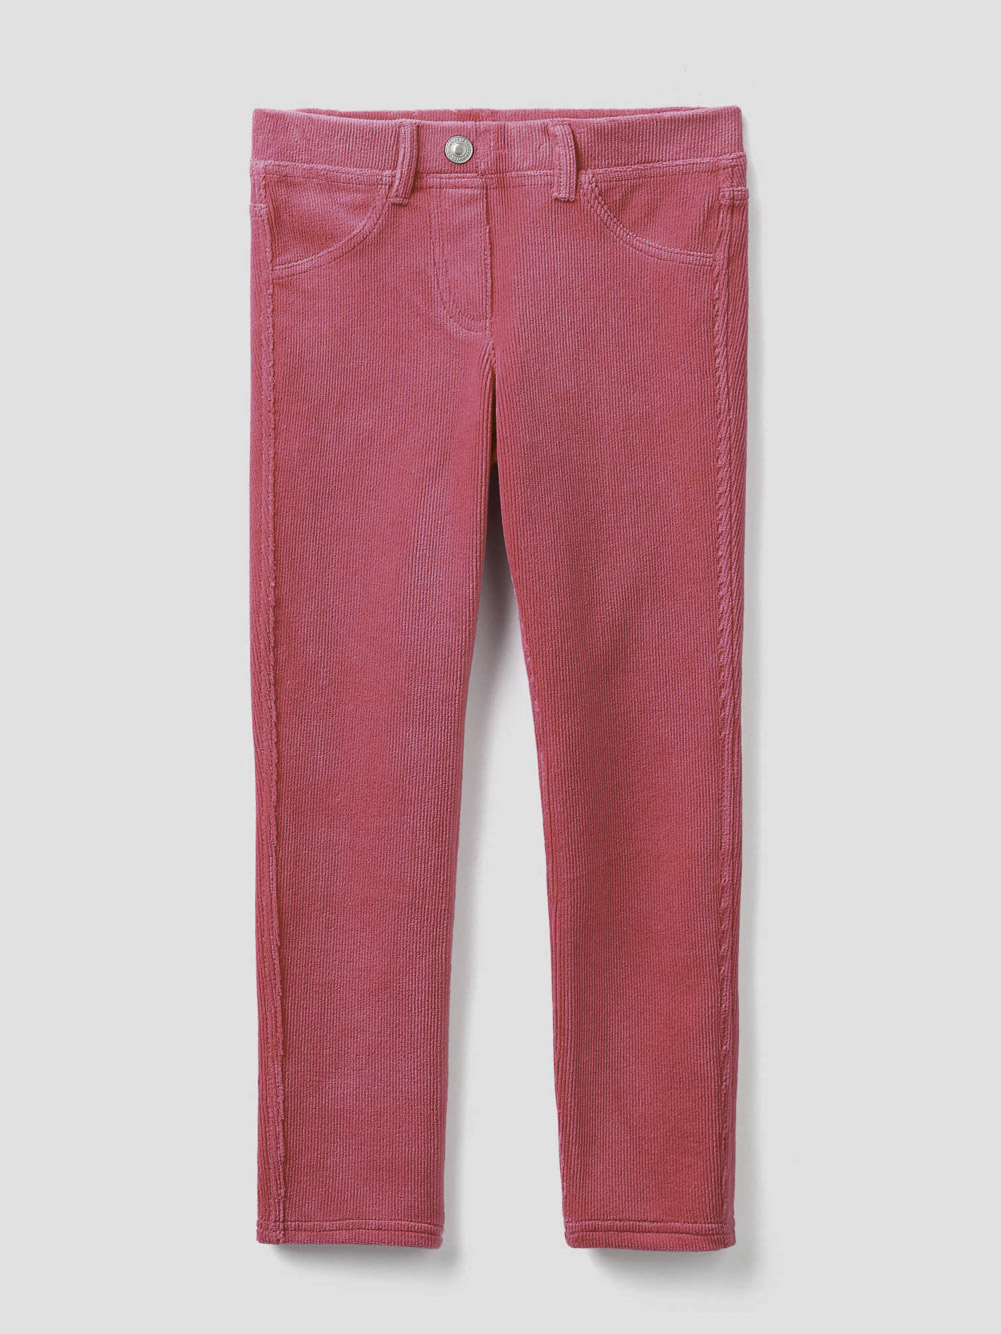 012 BENETTON Παντελόνι super skinny 4DZB57LZ0 20A02A